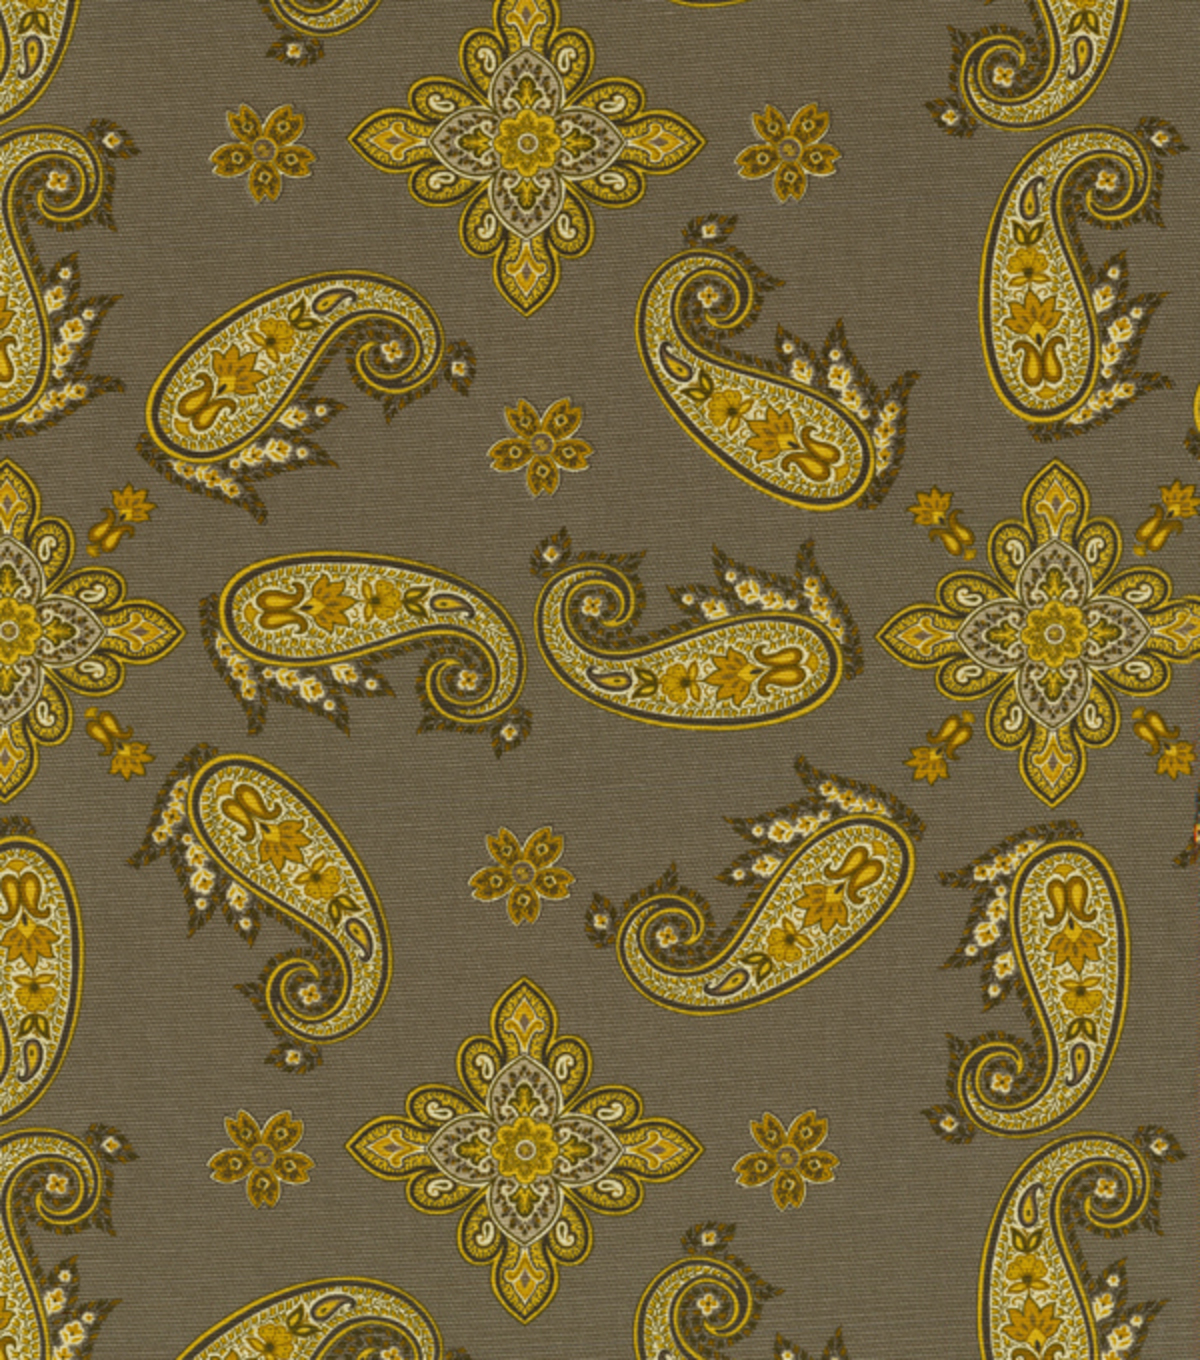 Home Decor 8\u0022x8\u0022 Fabric Swatch-Waverly Talcott Twirl Onyx